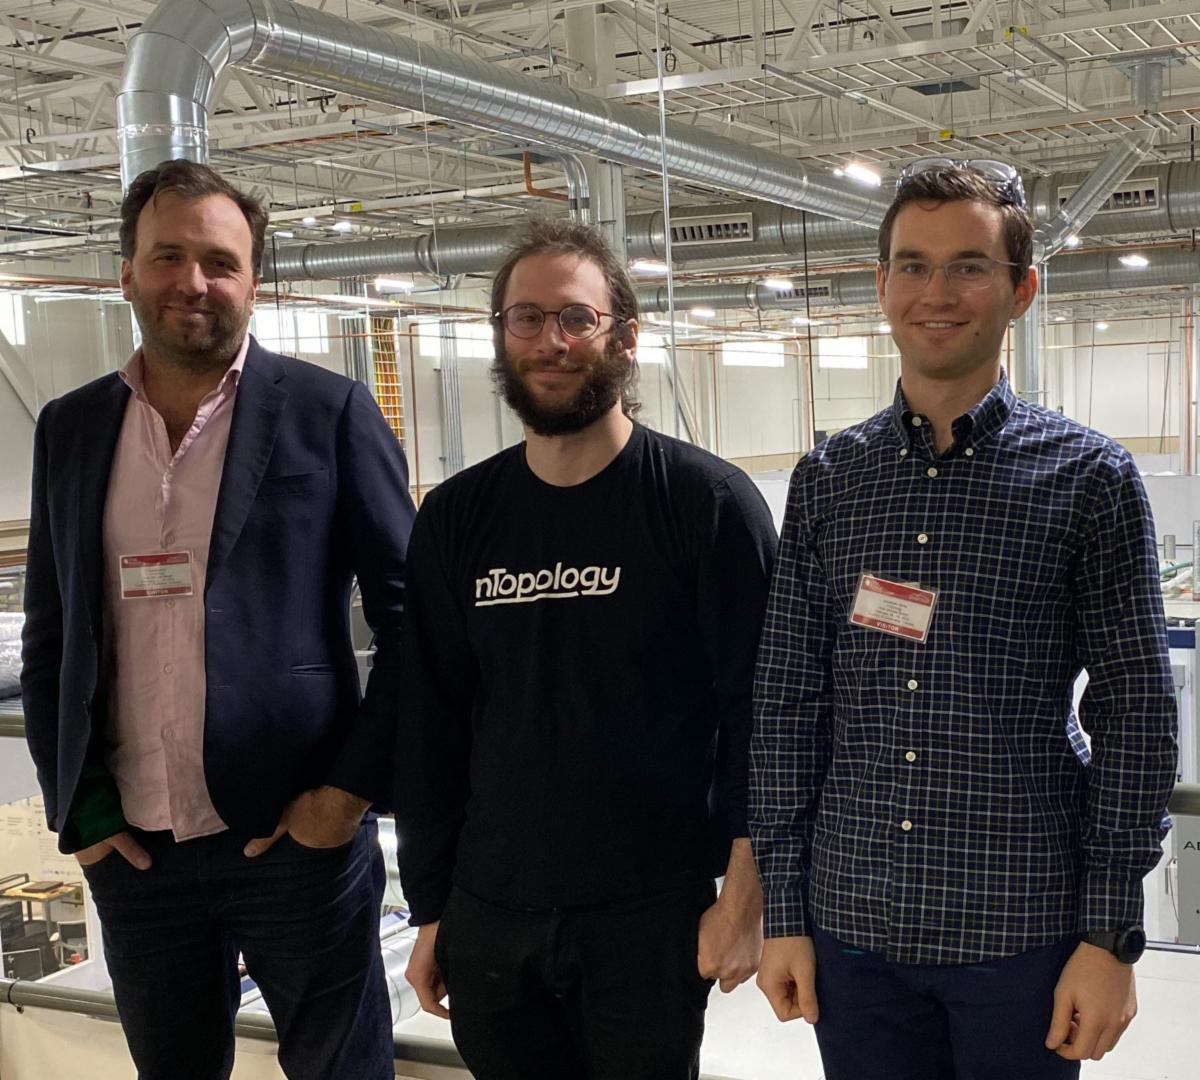 Duann Scott (left), Philip Schiffrin (center) and Jonathan Harris (right), from nTopology, at the Oak Ridge National Laboratory facility to kick off the project. Photo via nTopology.